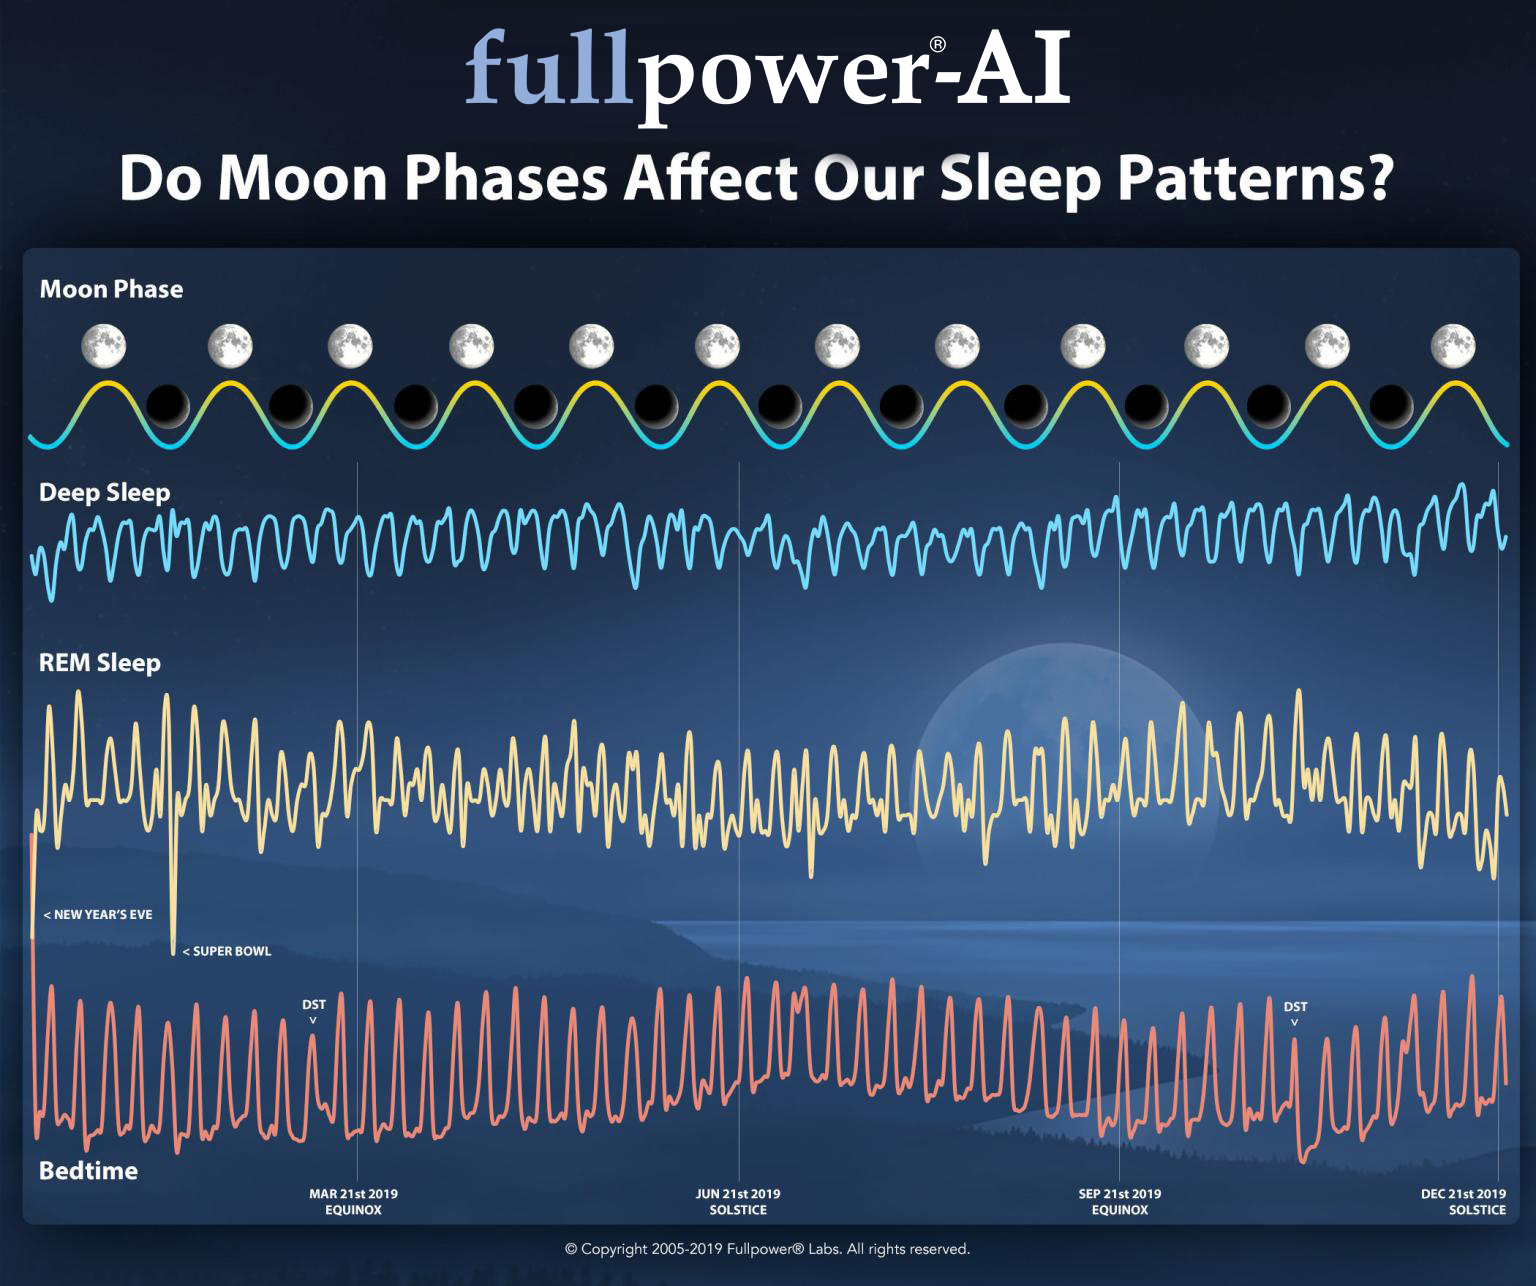 do-moon-phases-affect-our-sleep-patterns